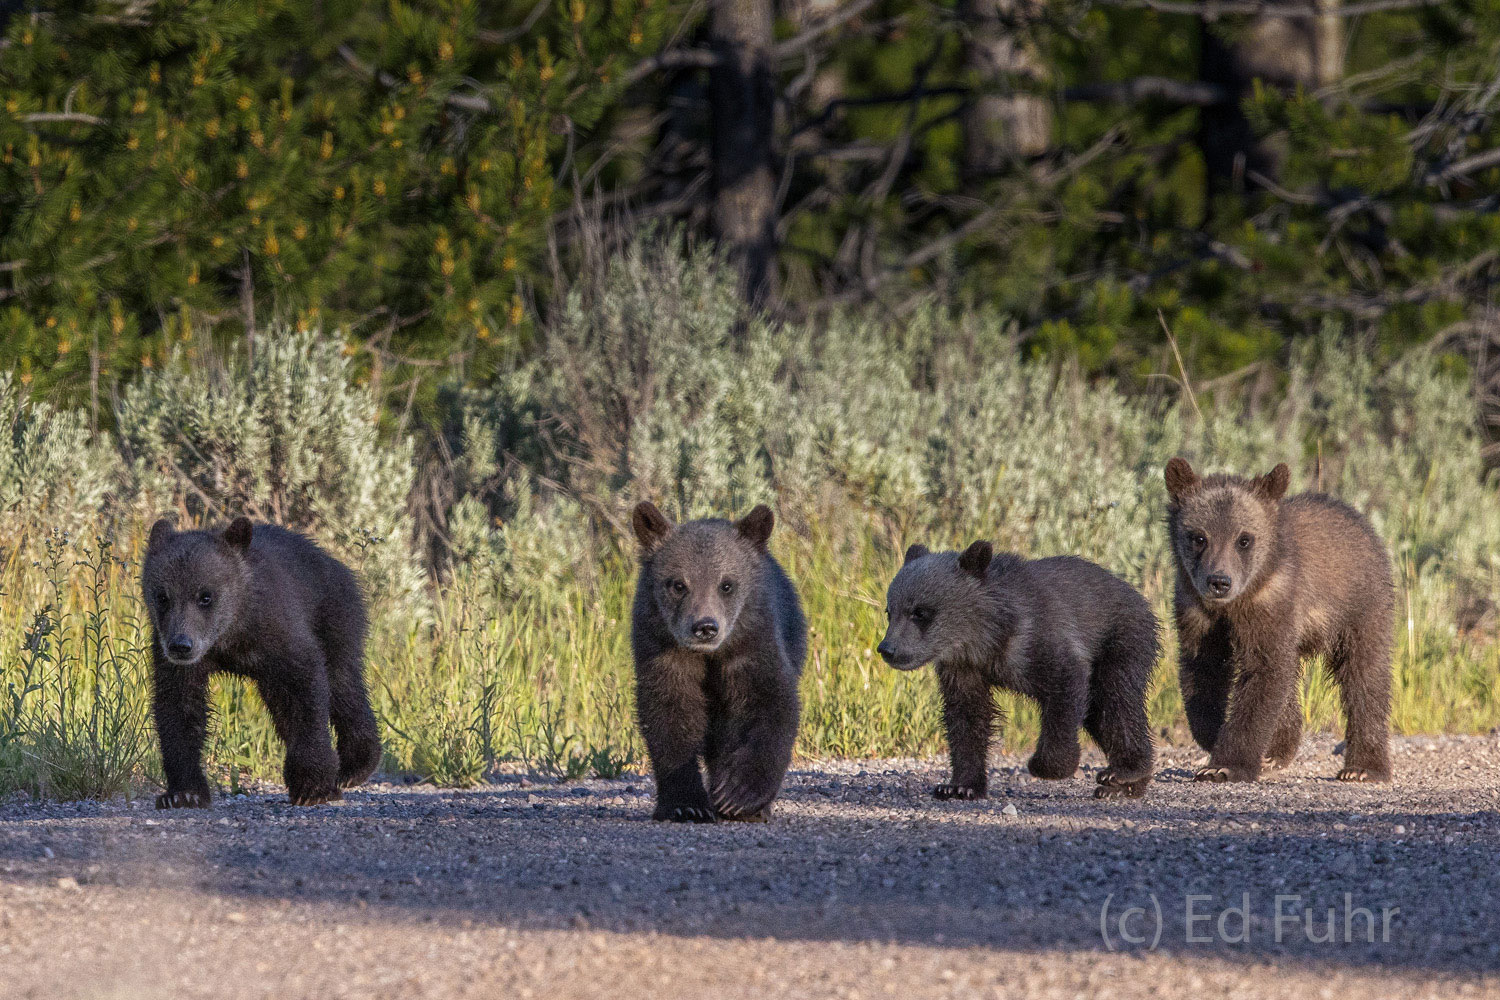 Meet the new Fab Four as they make their way down what must be Abbey Road in Grand Teton National Park.